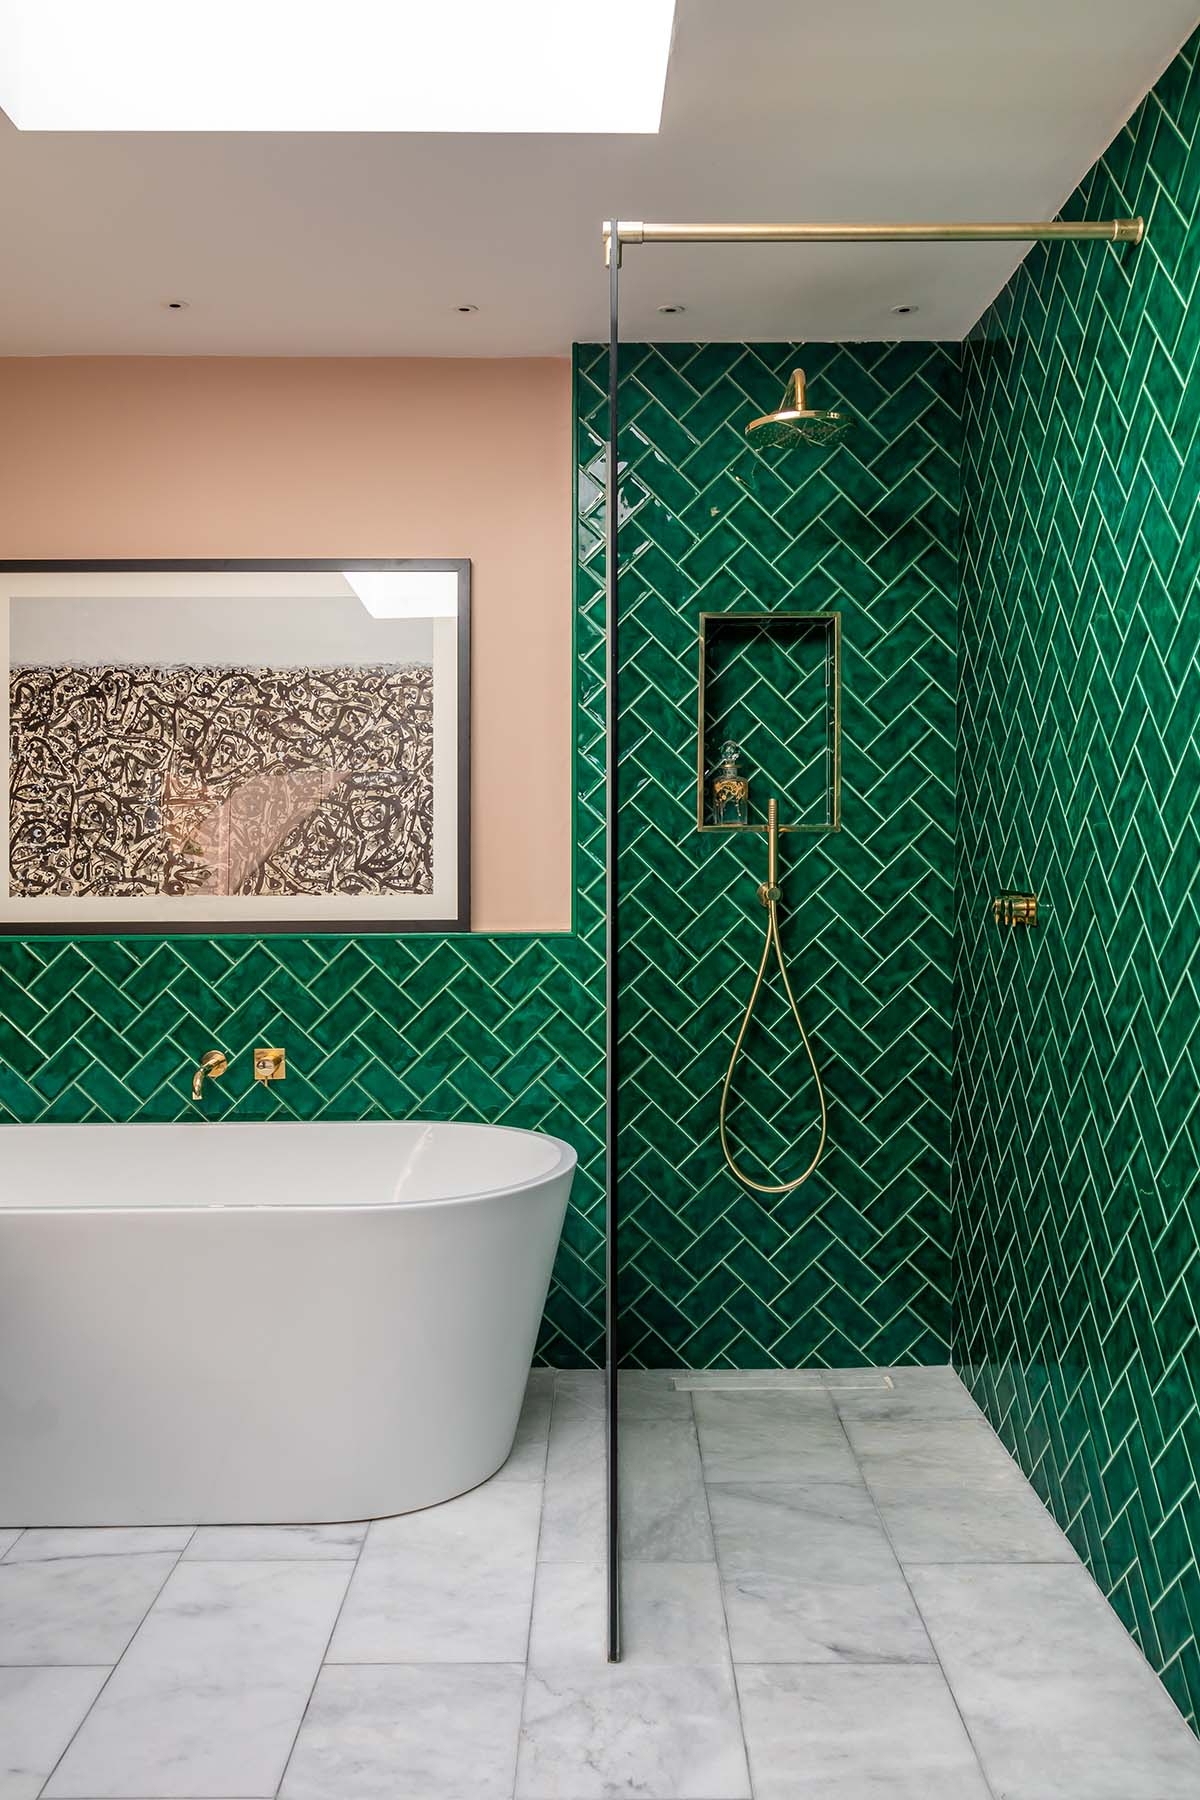 Use of Green in a Bathroom  It's a little unexpected in a bathroom, and that's what makes this stunning herringbone pattern tile so successful. Notice how the accent color of peach really makes the green pop along with the white and gives it a fresh modern feel, along with the gold modern fixtures.